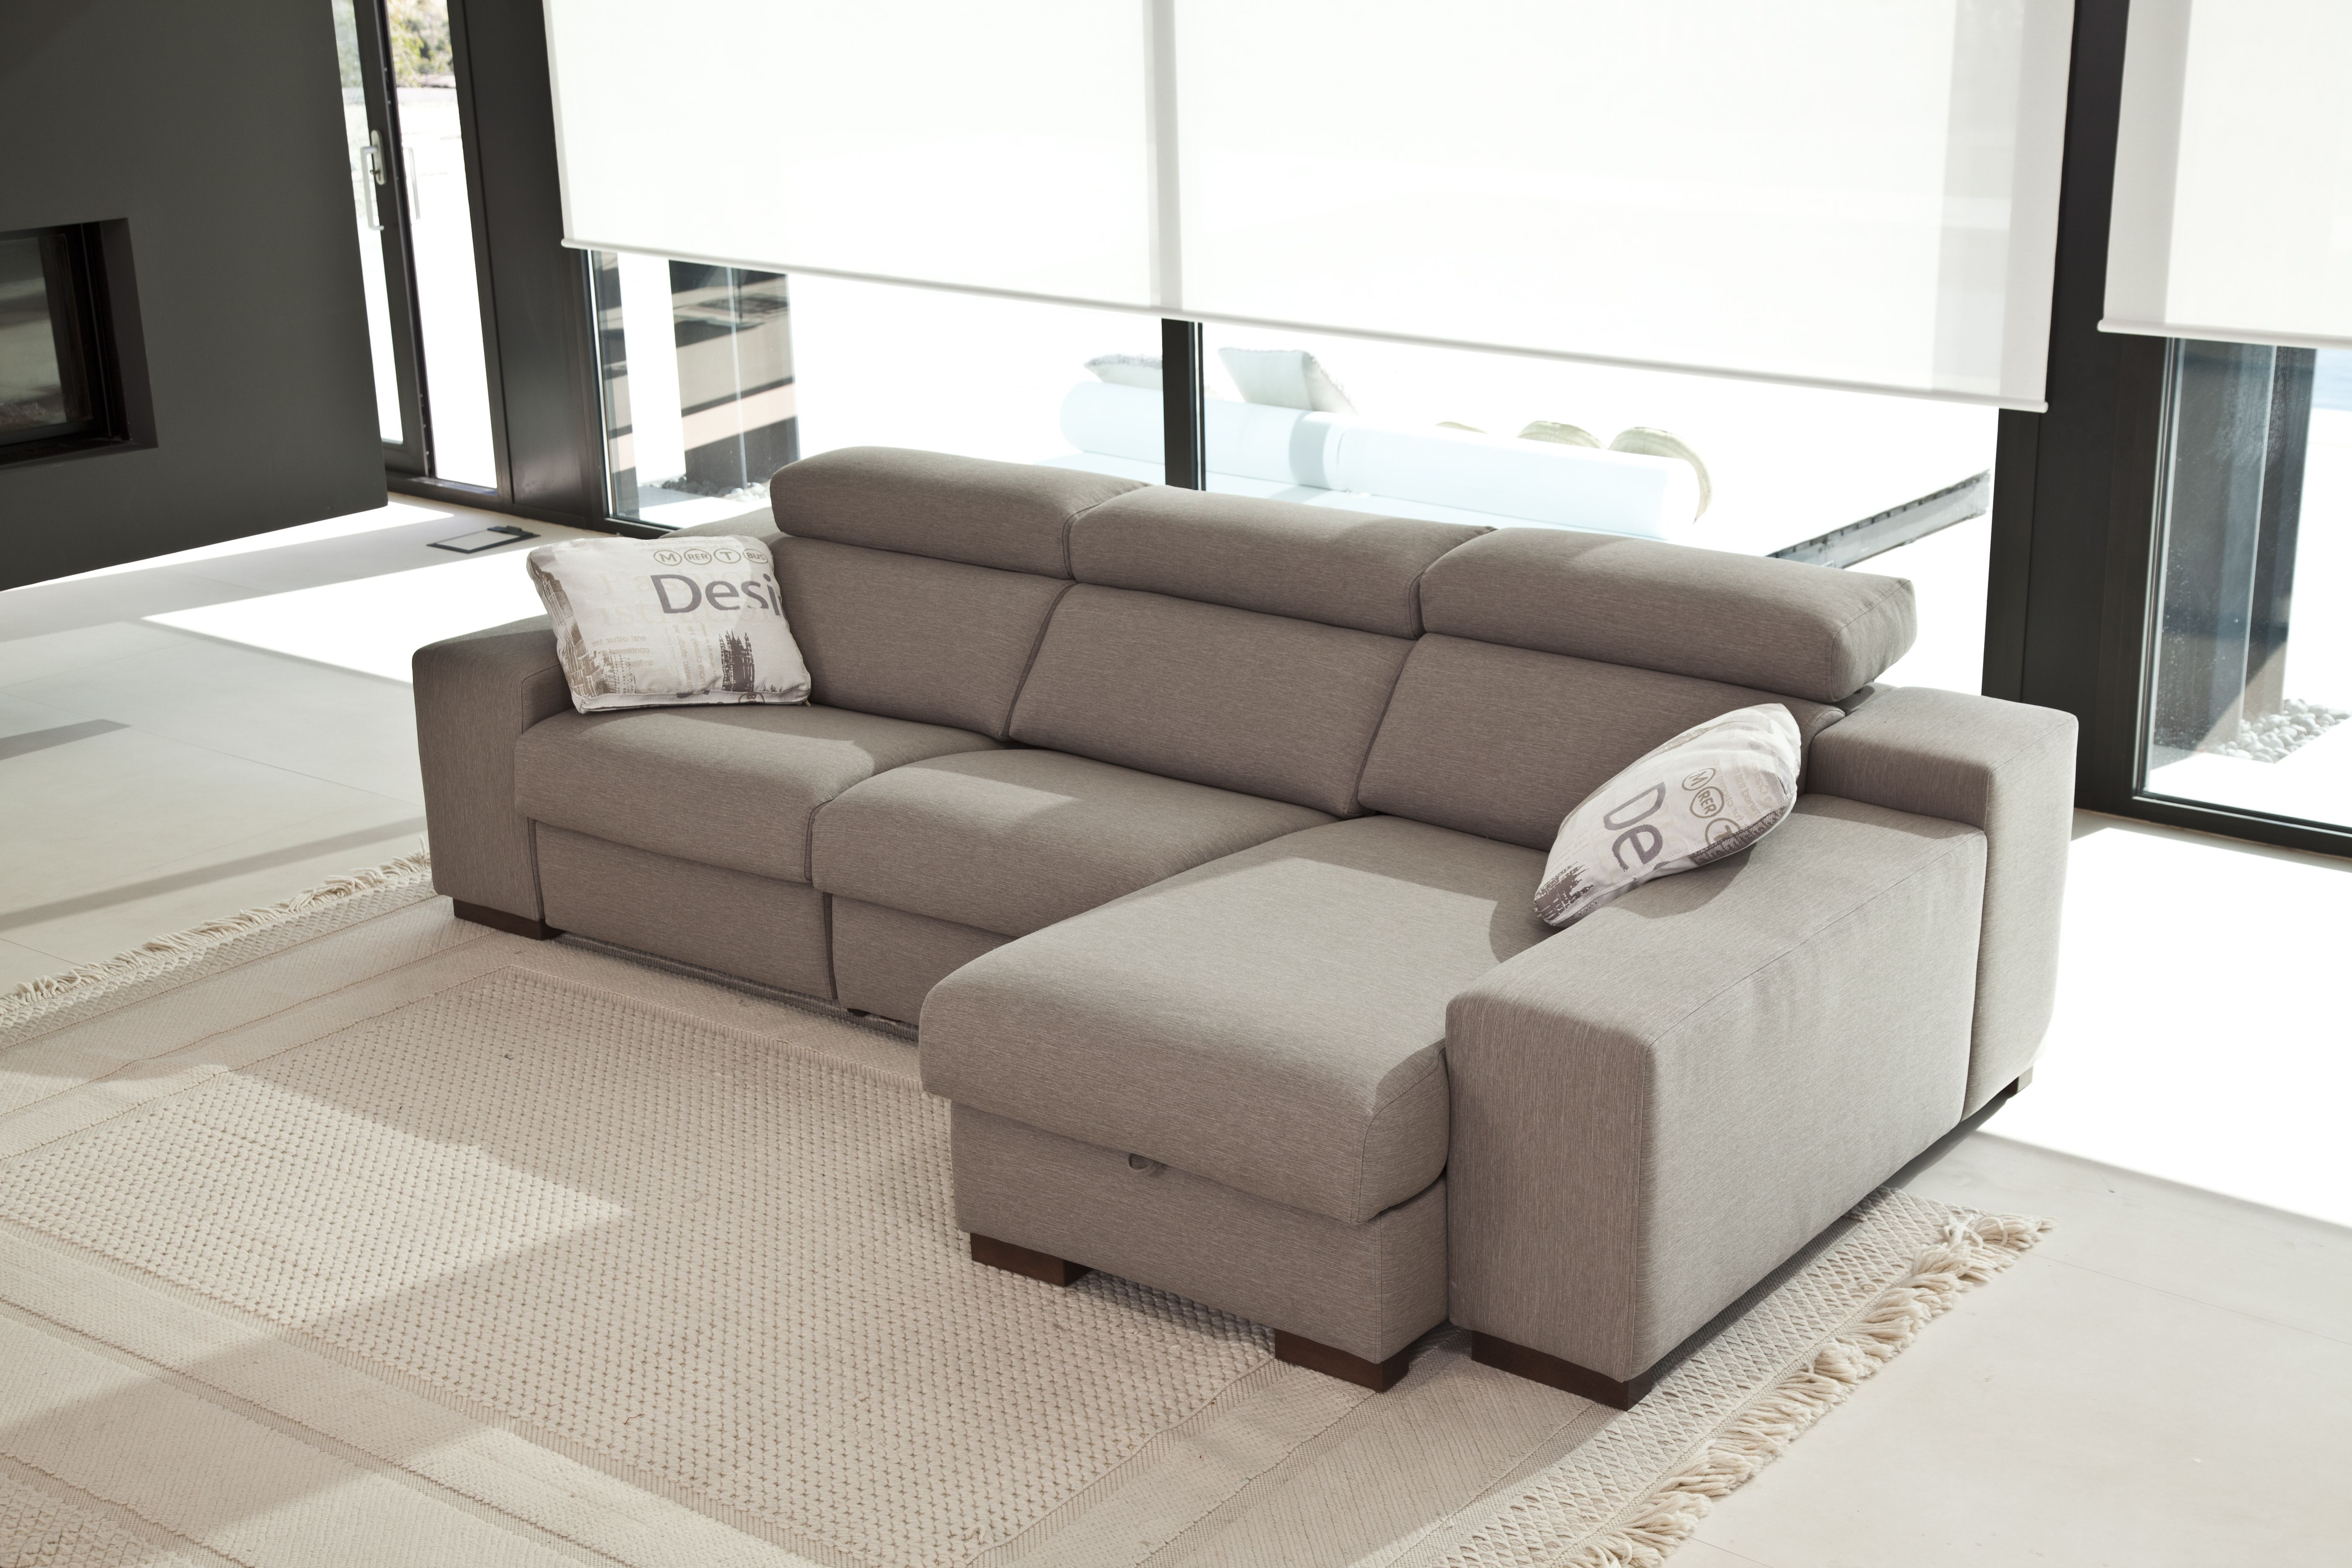 Sectional sofas couches lotus living room ideas lotus flower canapes sofas sofa lotus flowers